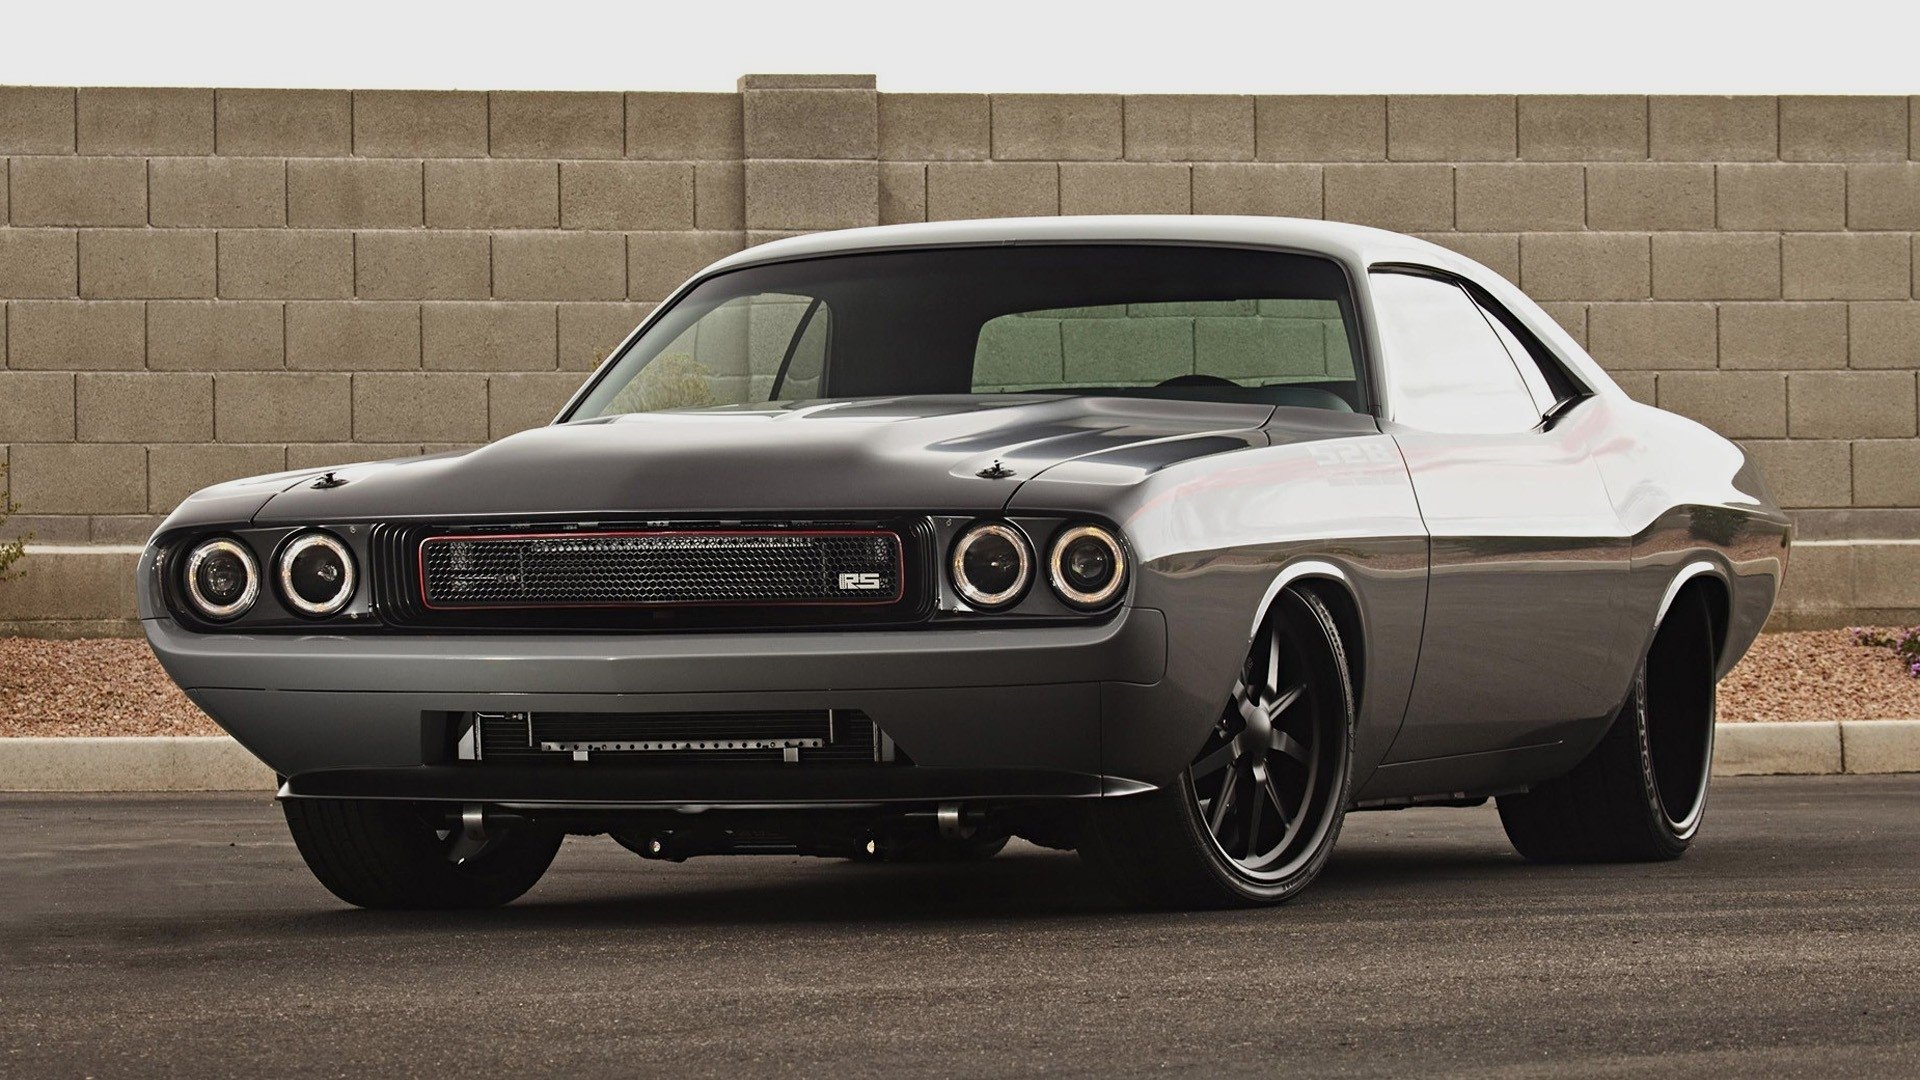 Muscle carmuscle cars hdr photography widescreen 1920x1080 wallpaper 1920x1080